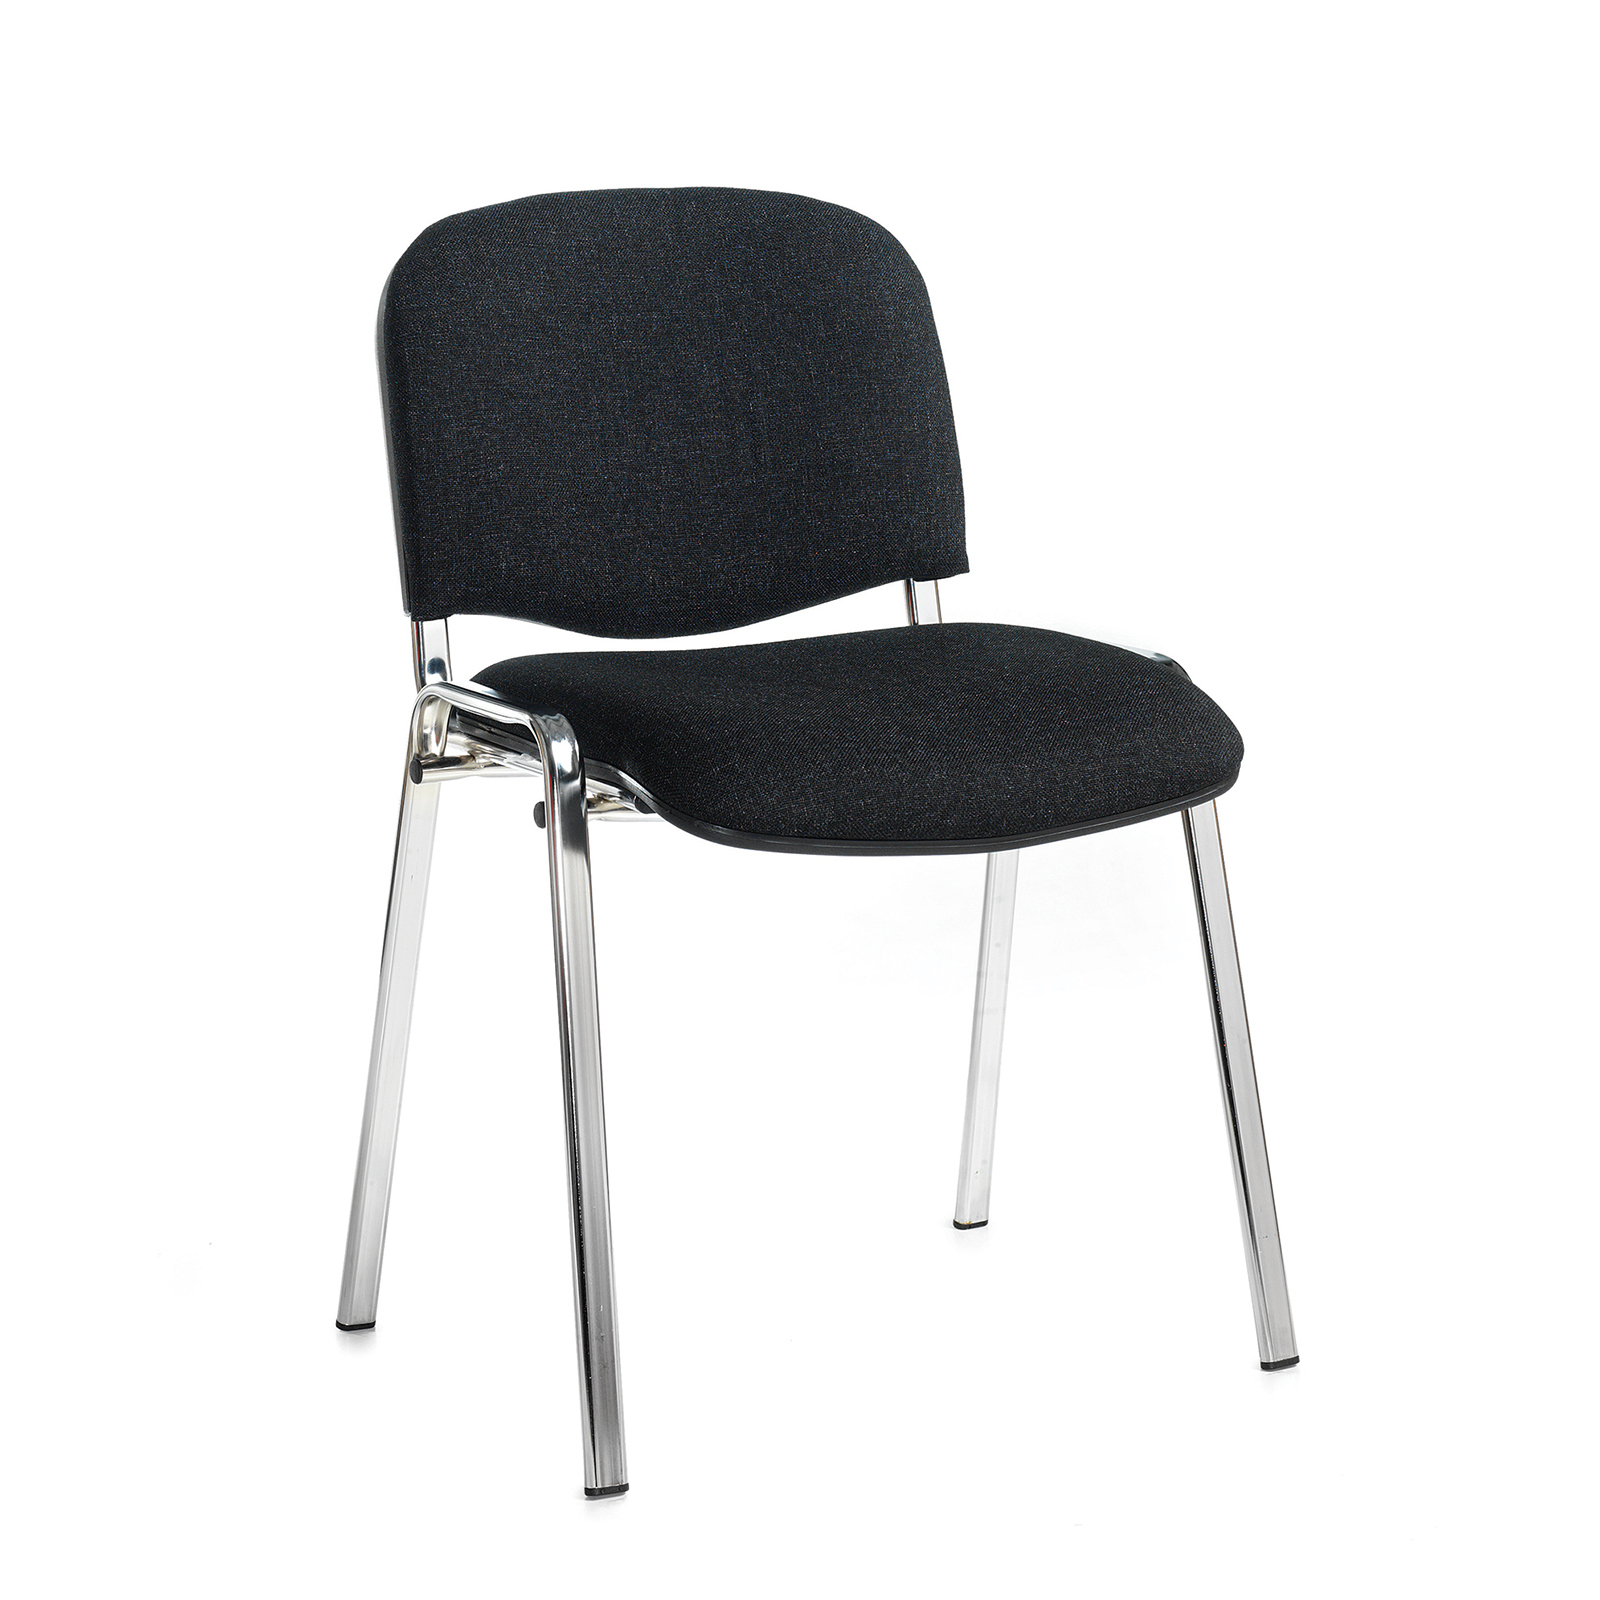 Boardroom / Meeting Taurus meeting room stackable chair with chrome frame and no arms - charcoal